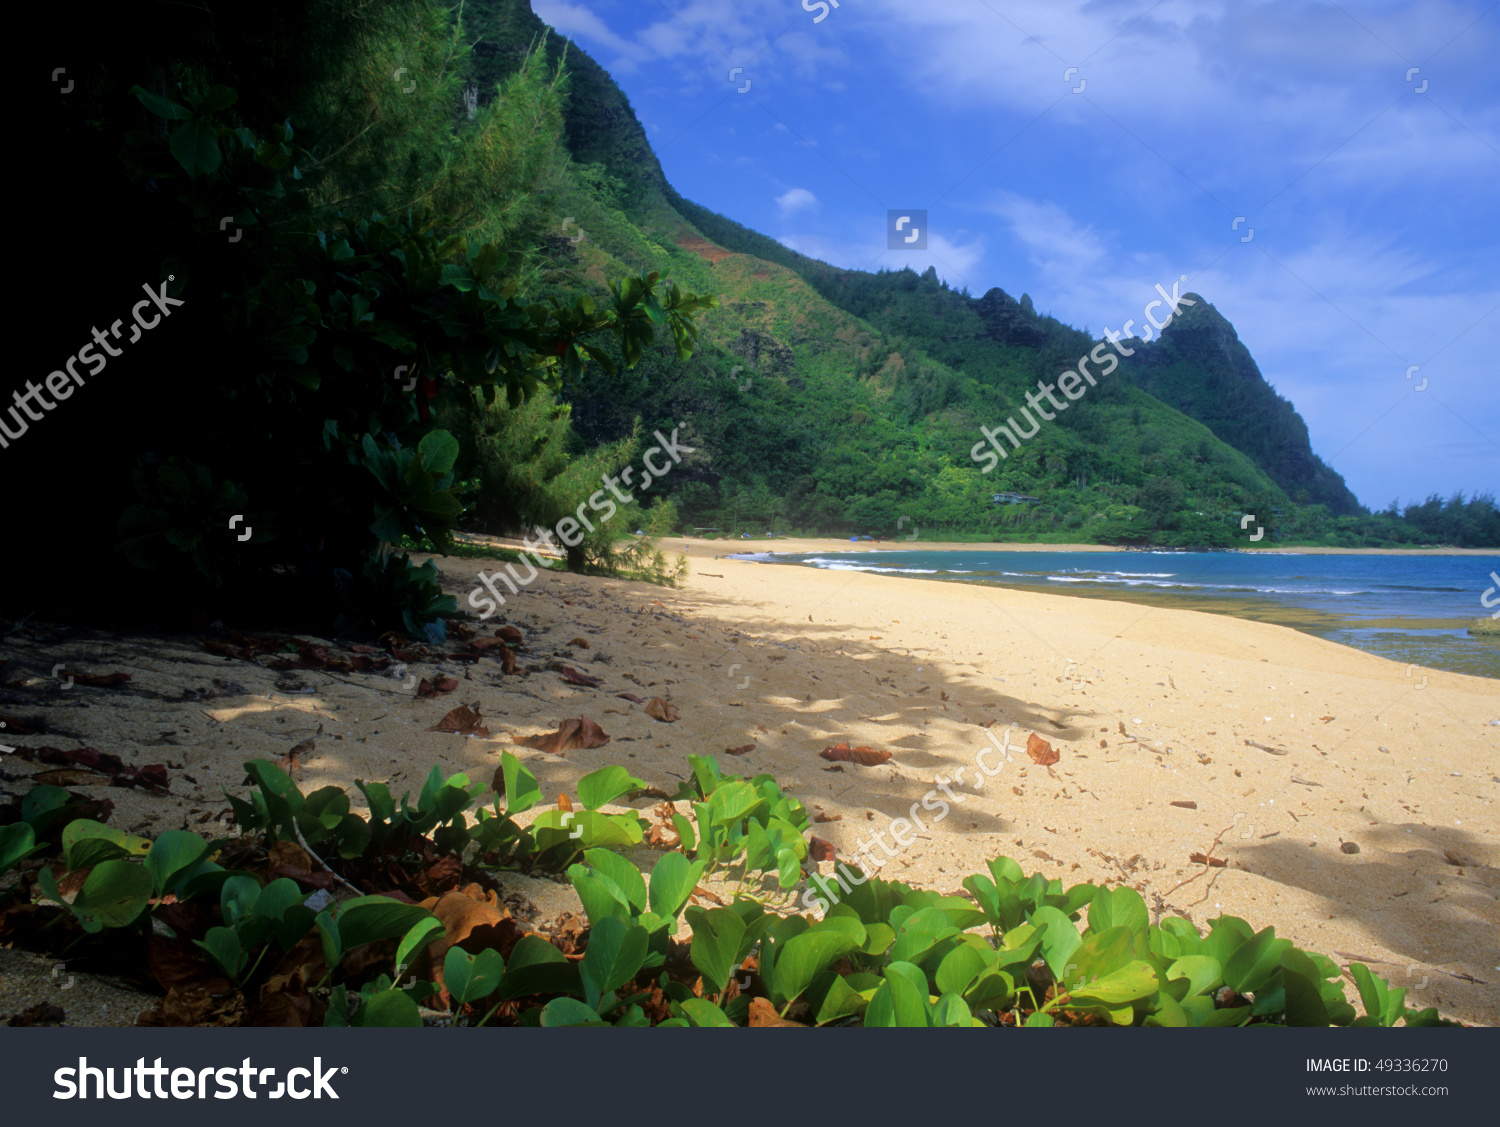 Tunnels Beach clipart #5, Download drawings